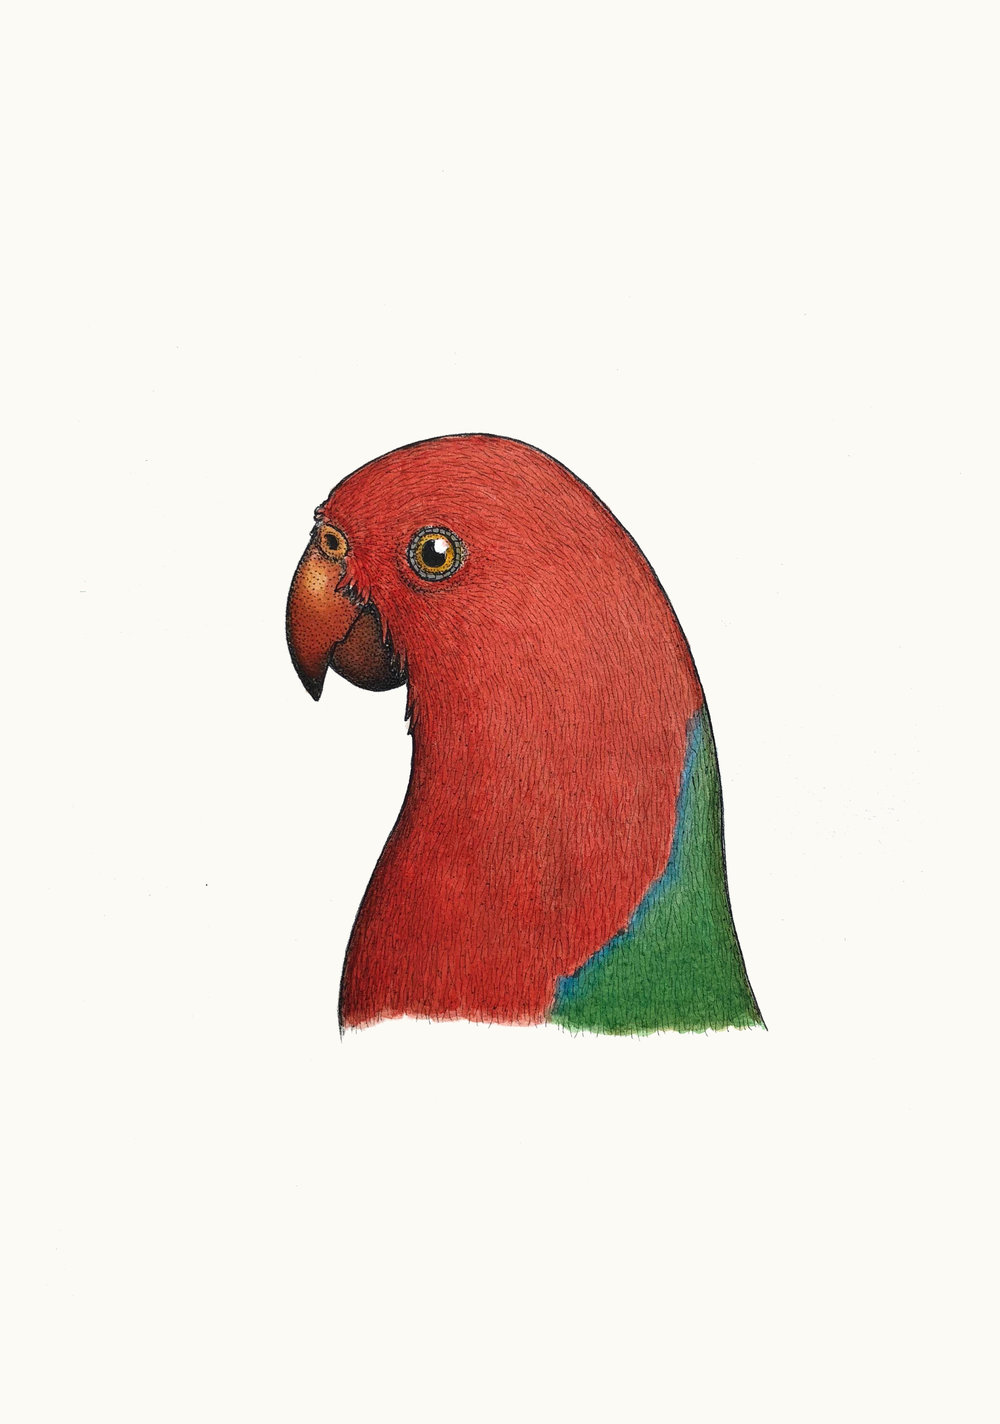 'Portrait of a King Parrot'